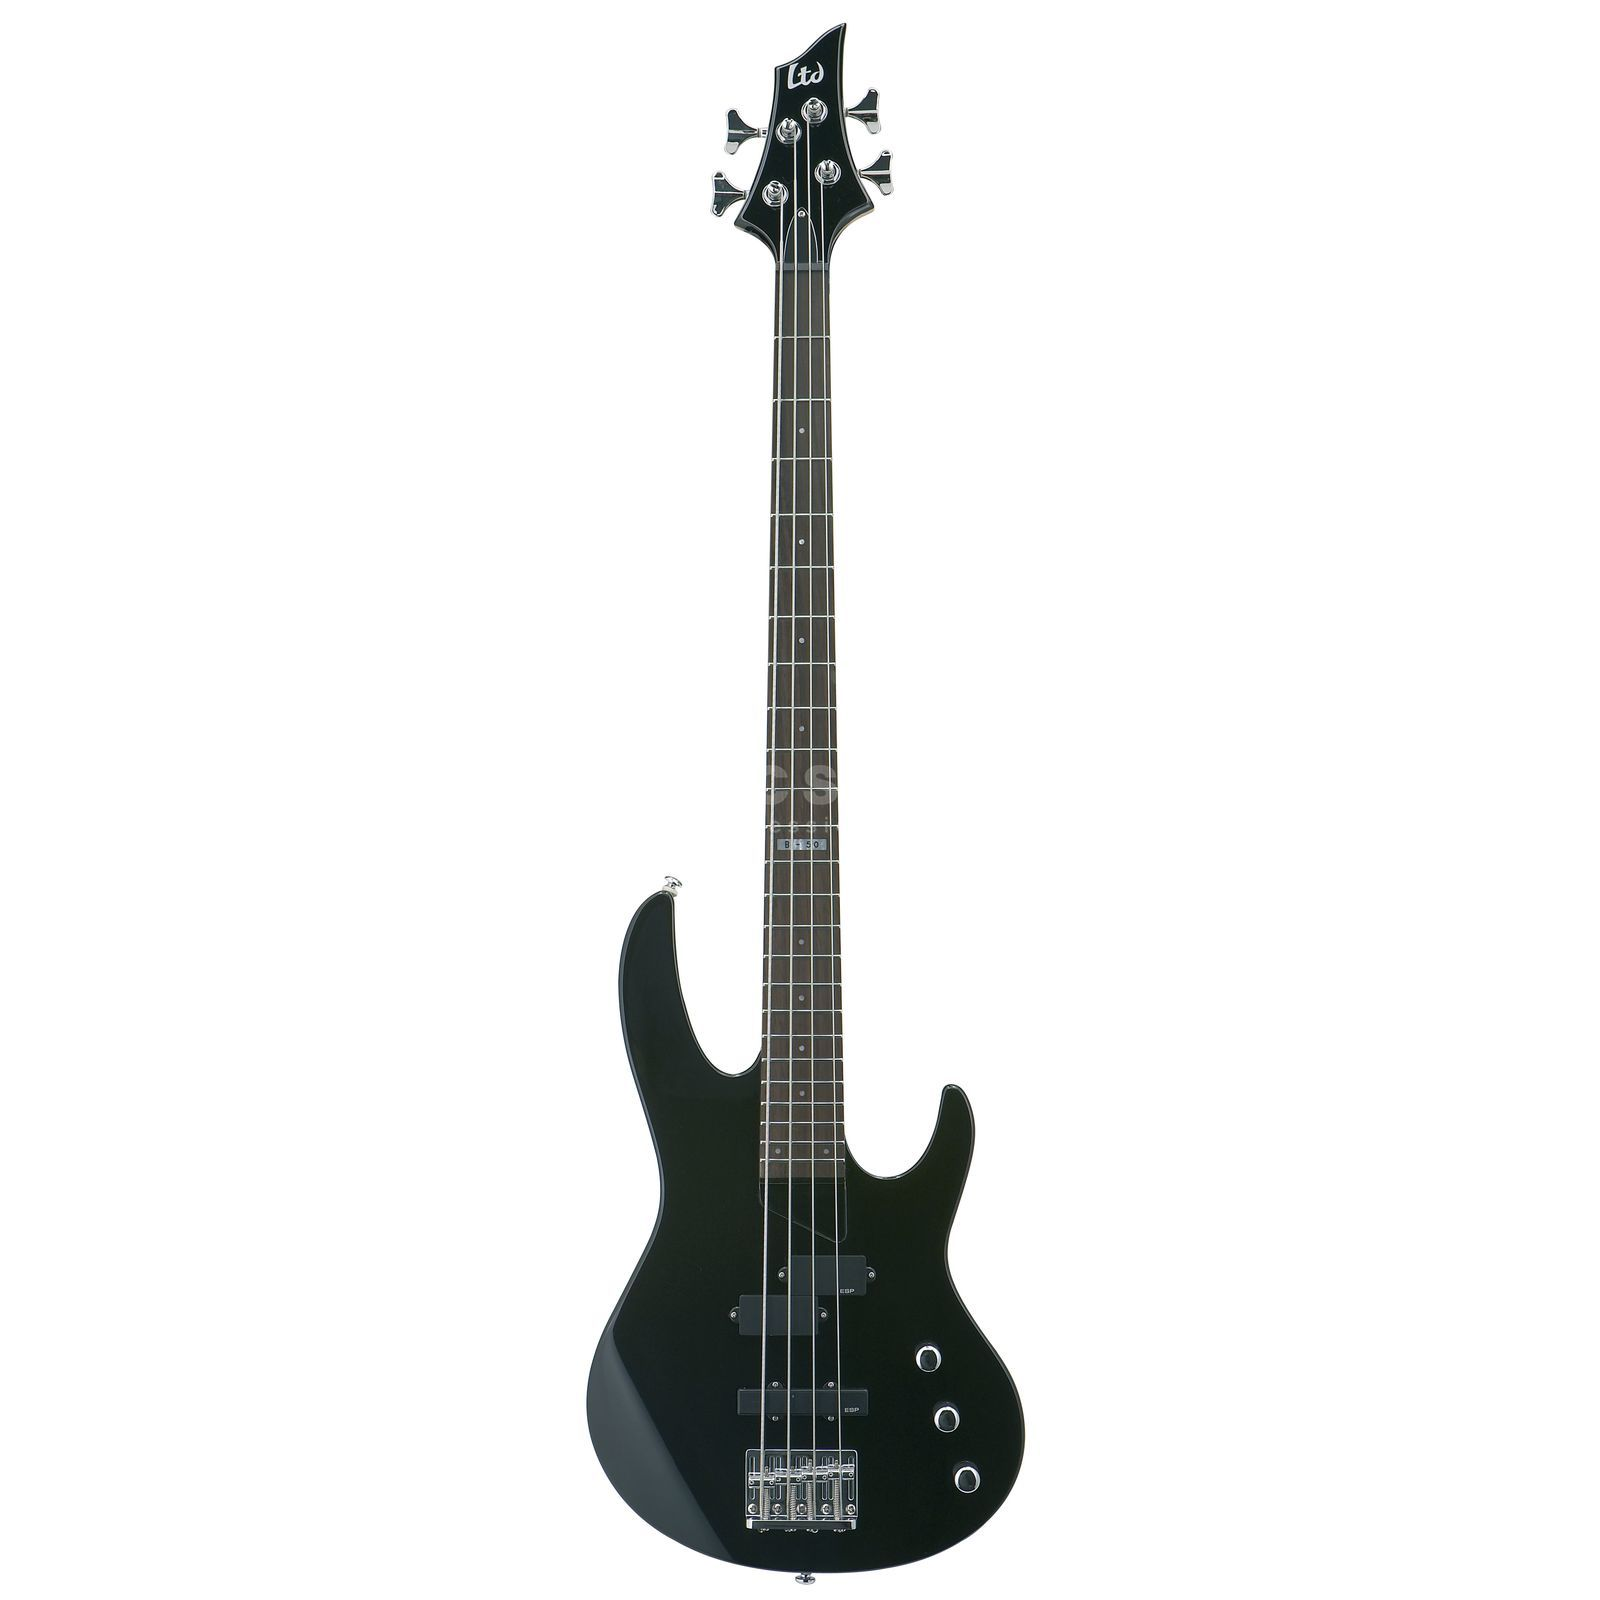 ESP LTD B-50 Bass Guitar, Black    Produktbillede